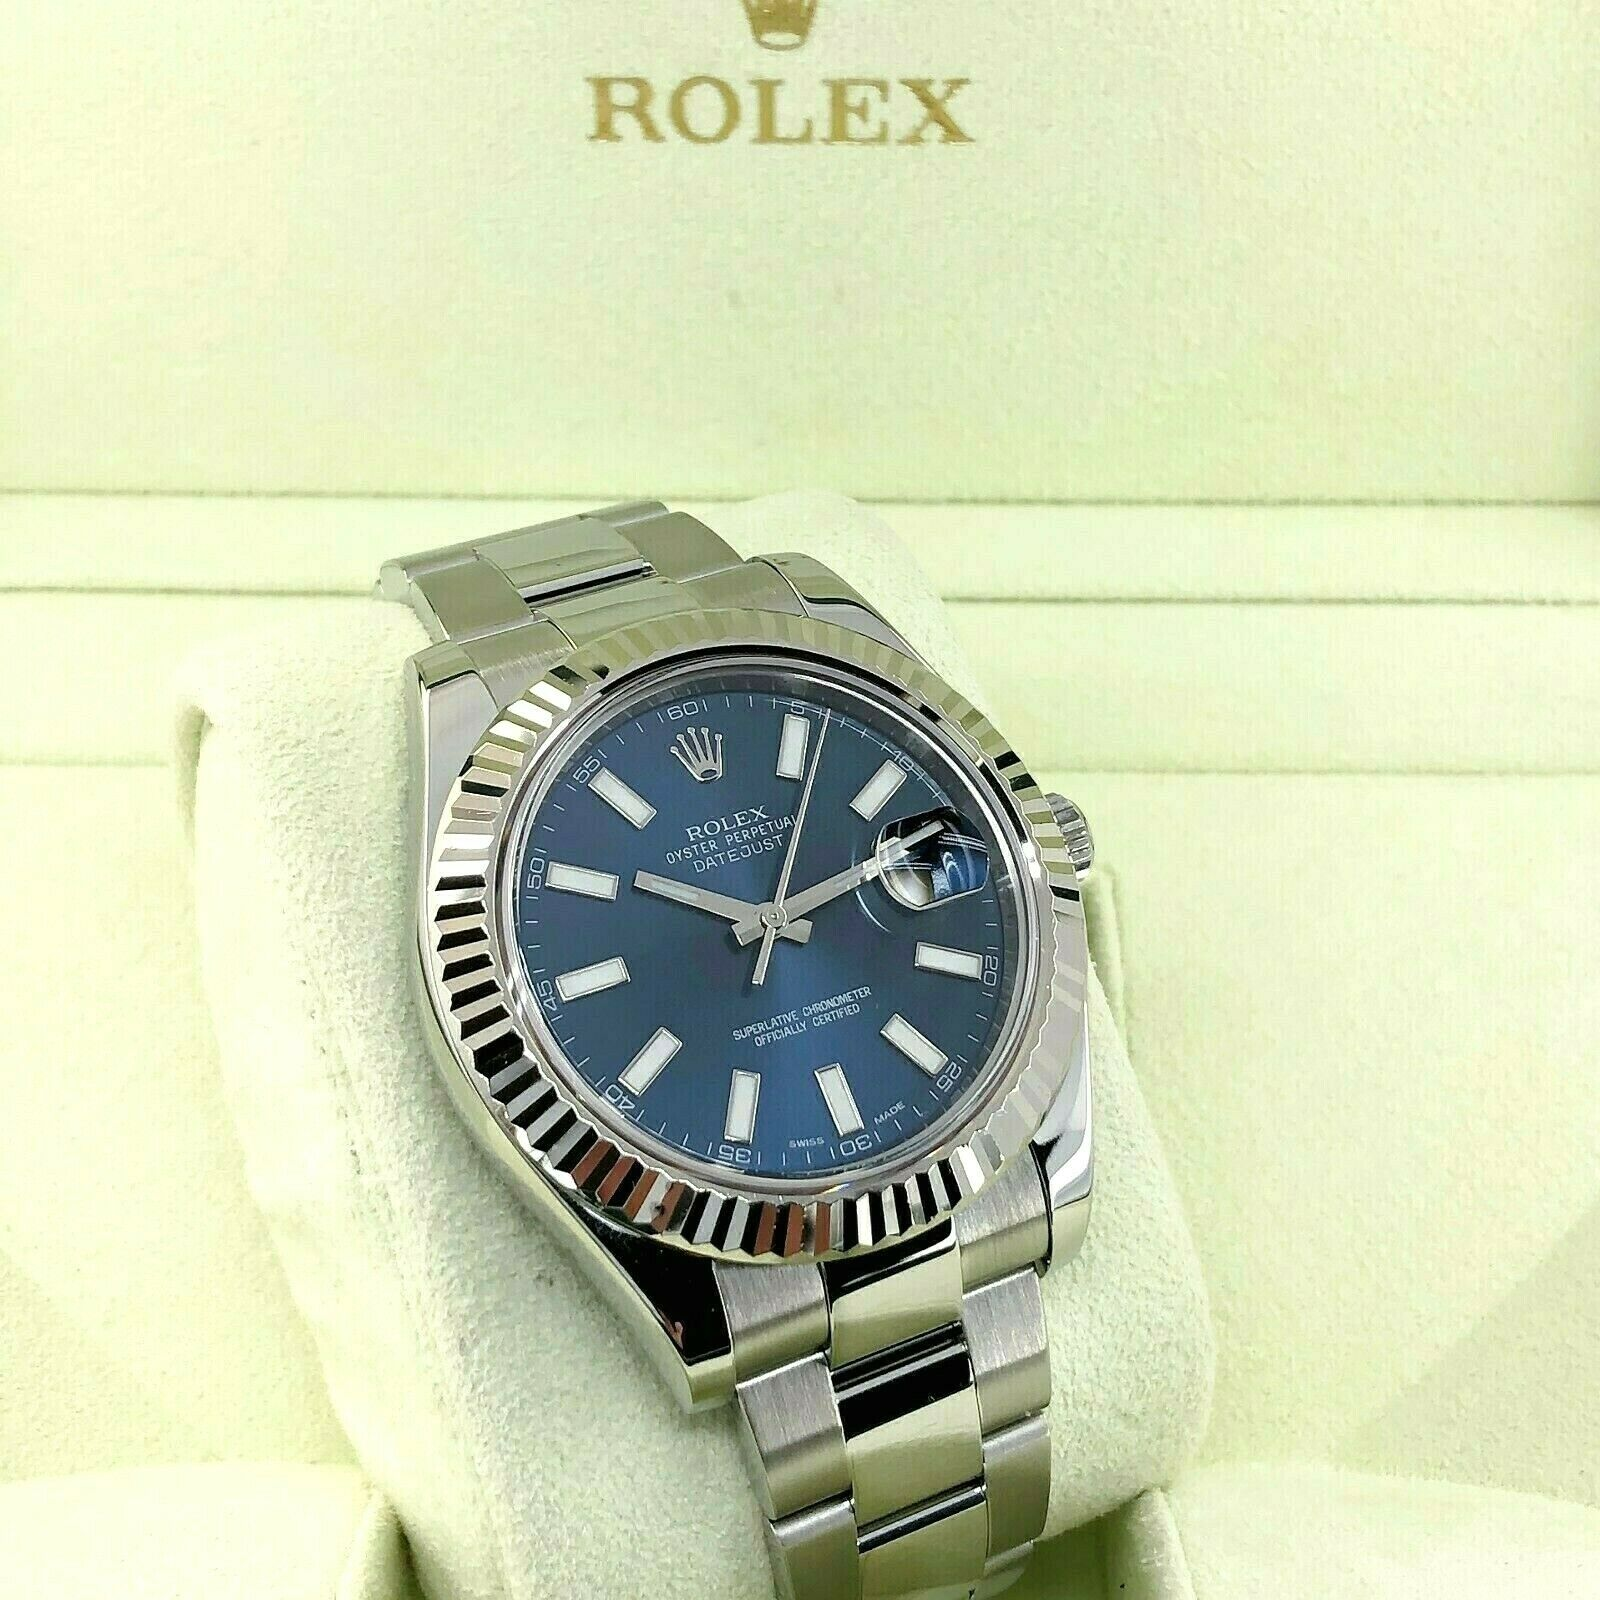 Rolex 41MM Datejust II Watch 18K Gold Fluted Bezel Stainless Steel Ref 116334